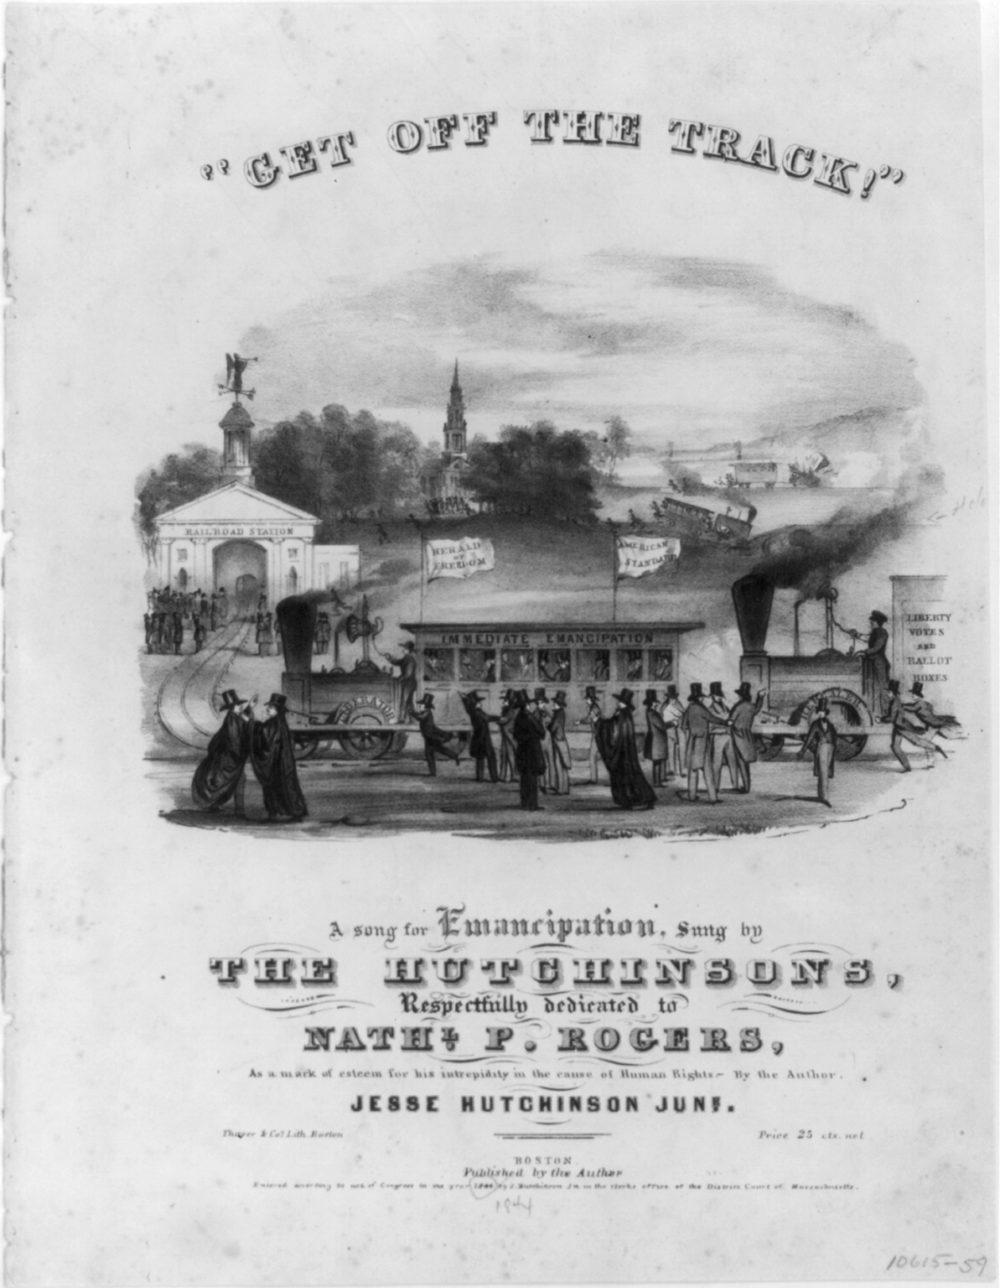 """Jesse Hutchinson and B.W. Thayer & Co, """"'Get off the track!' A song for emancipation, sung by The Hutchinsons,"""" 1844, via Library of Congress."""